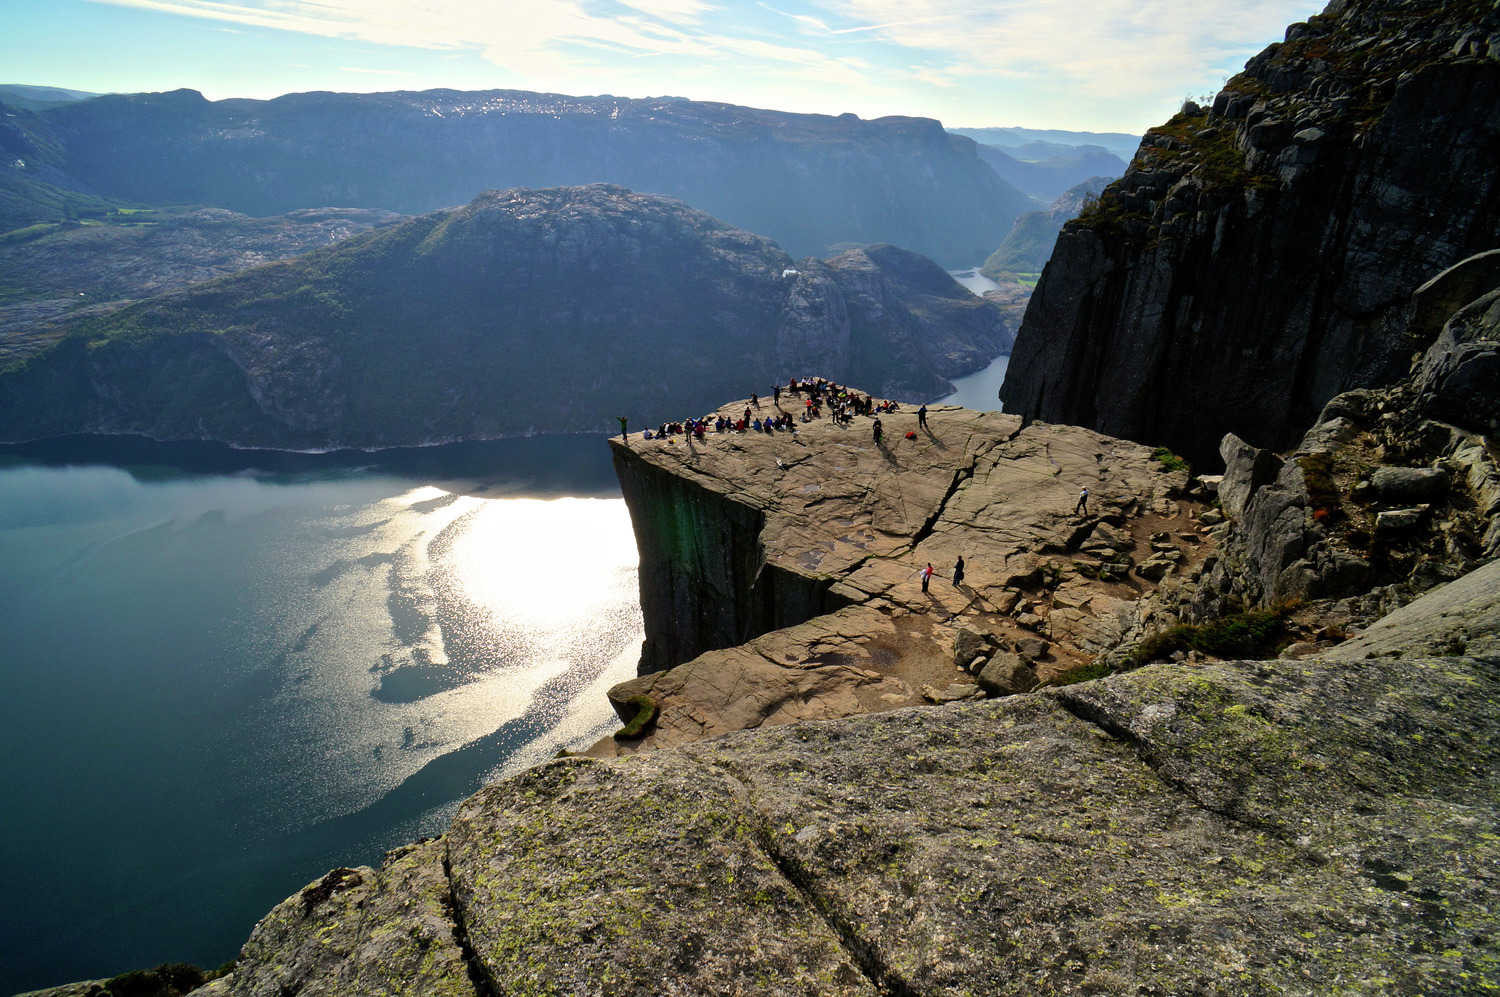 Hike To The Top Of The Pulpit Rock Nordic Experience